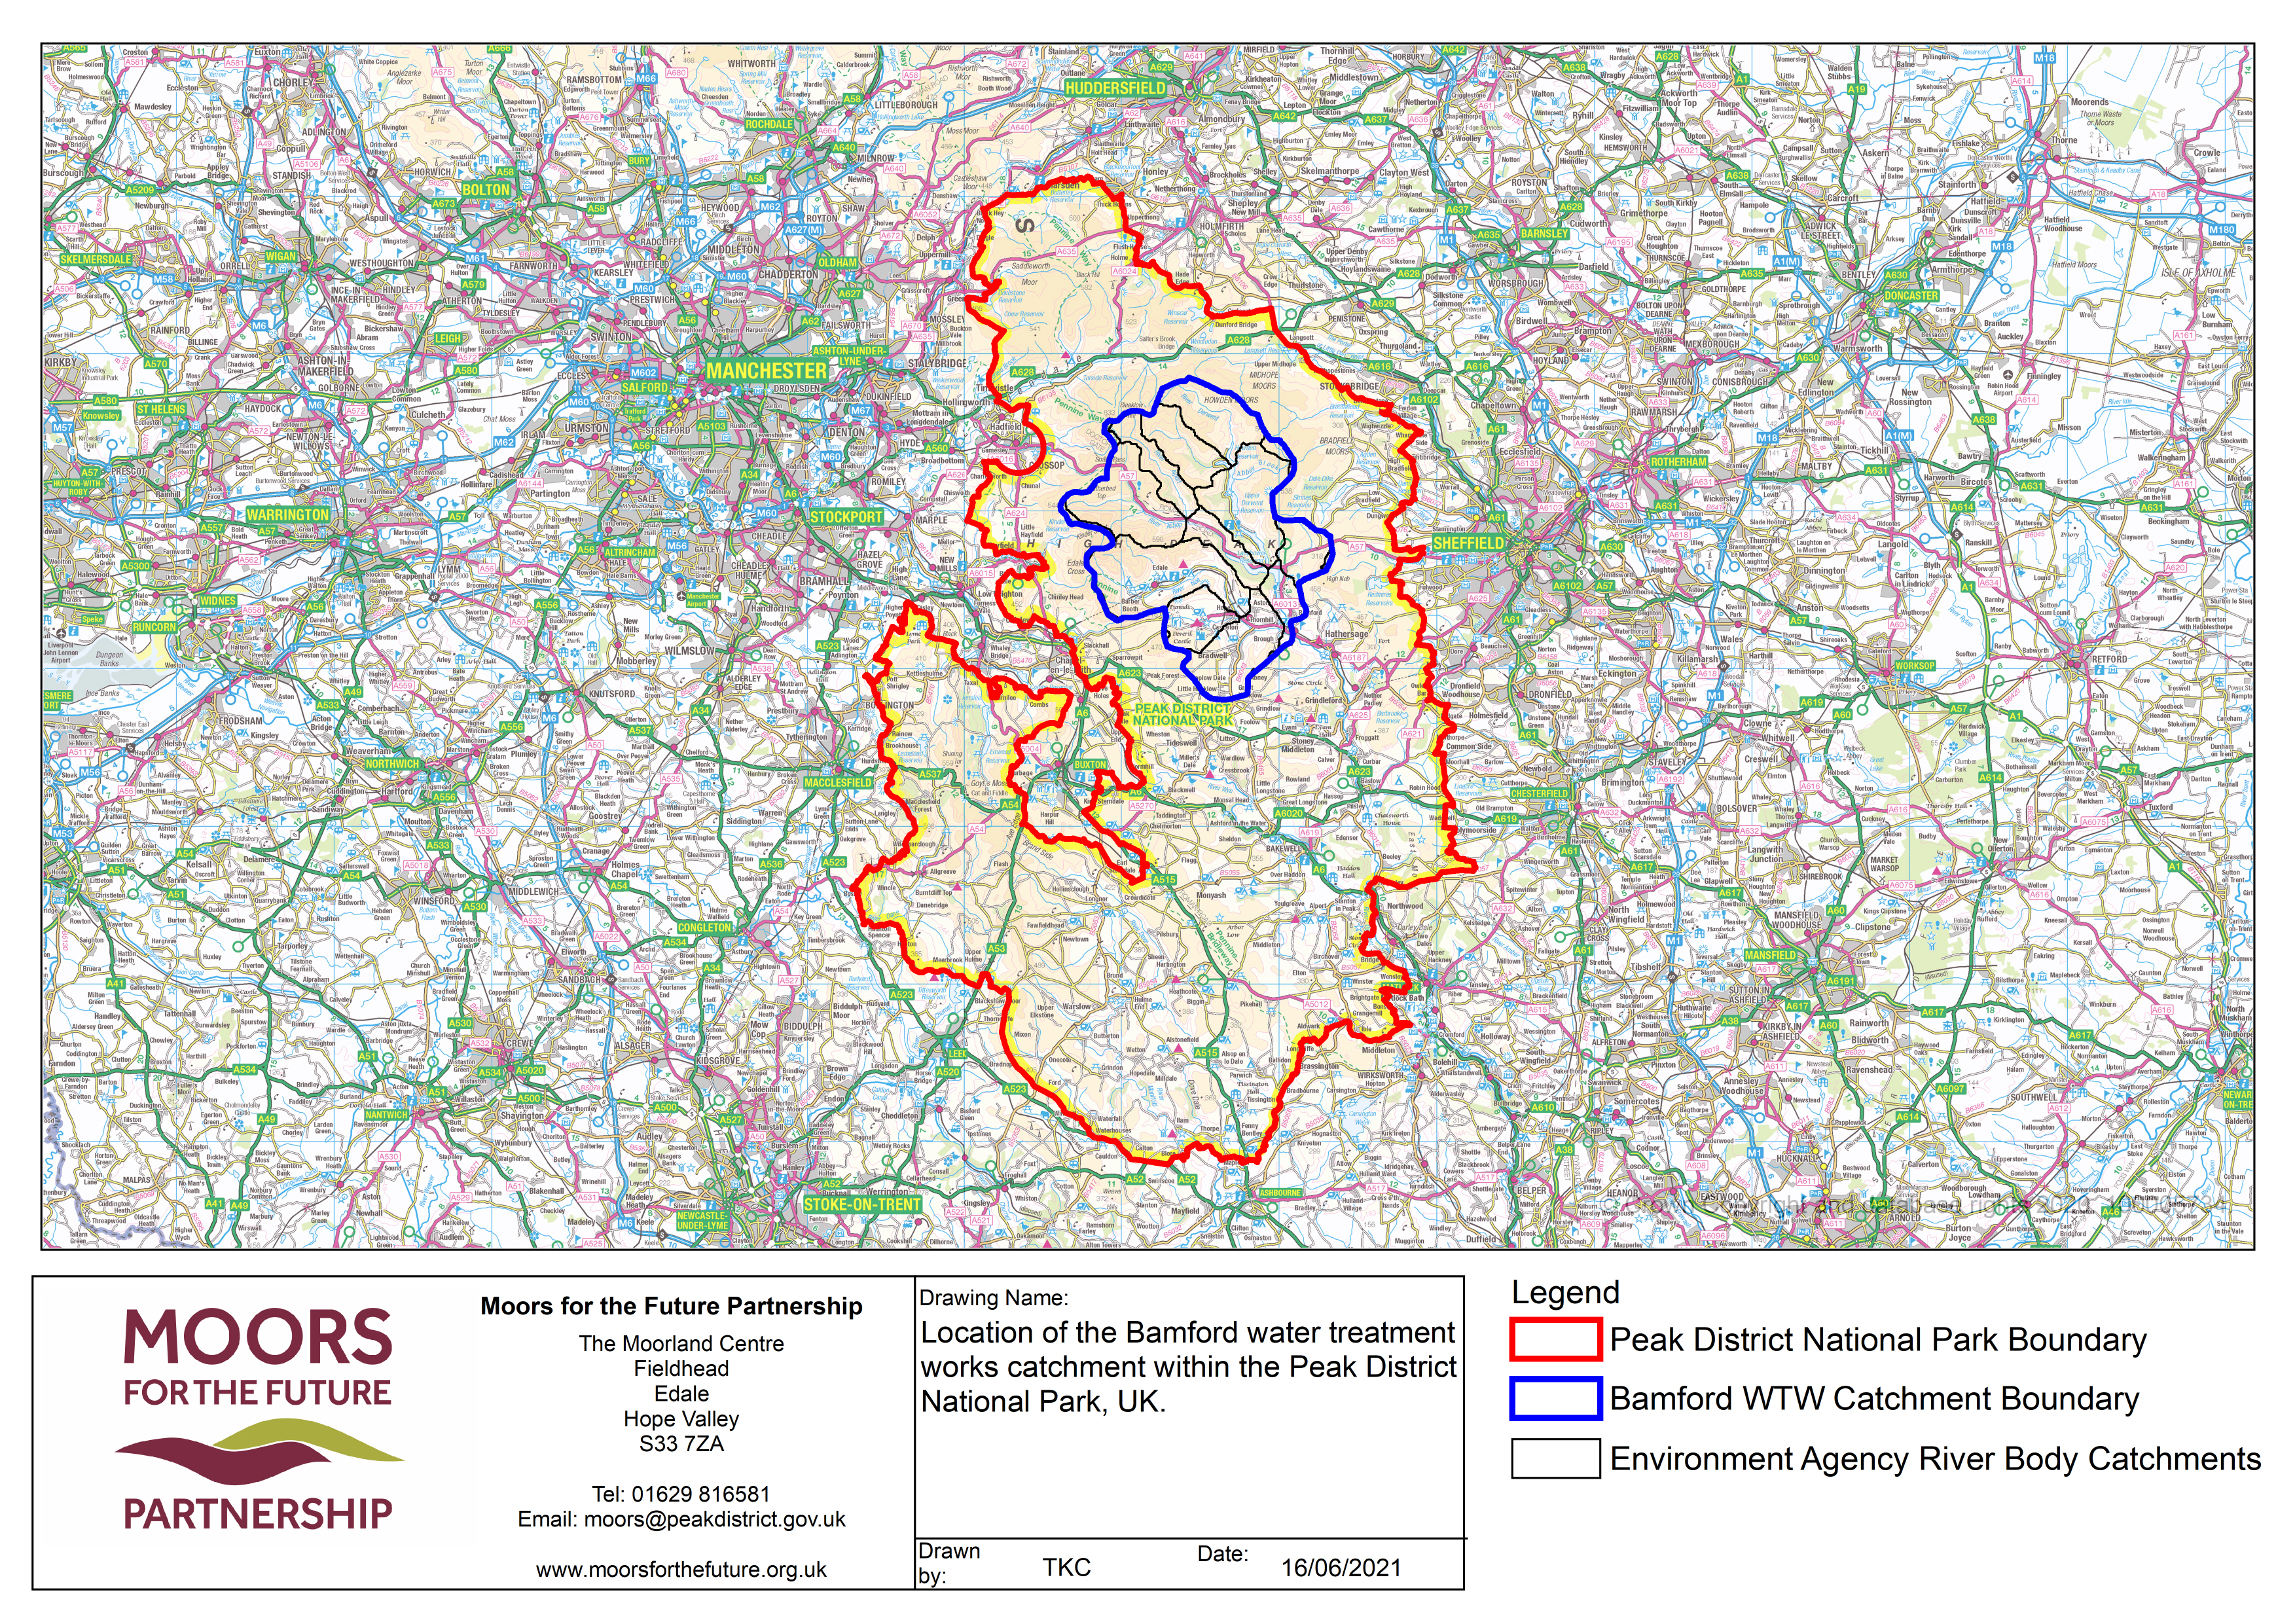 Map showing Bamford WTW Catchment